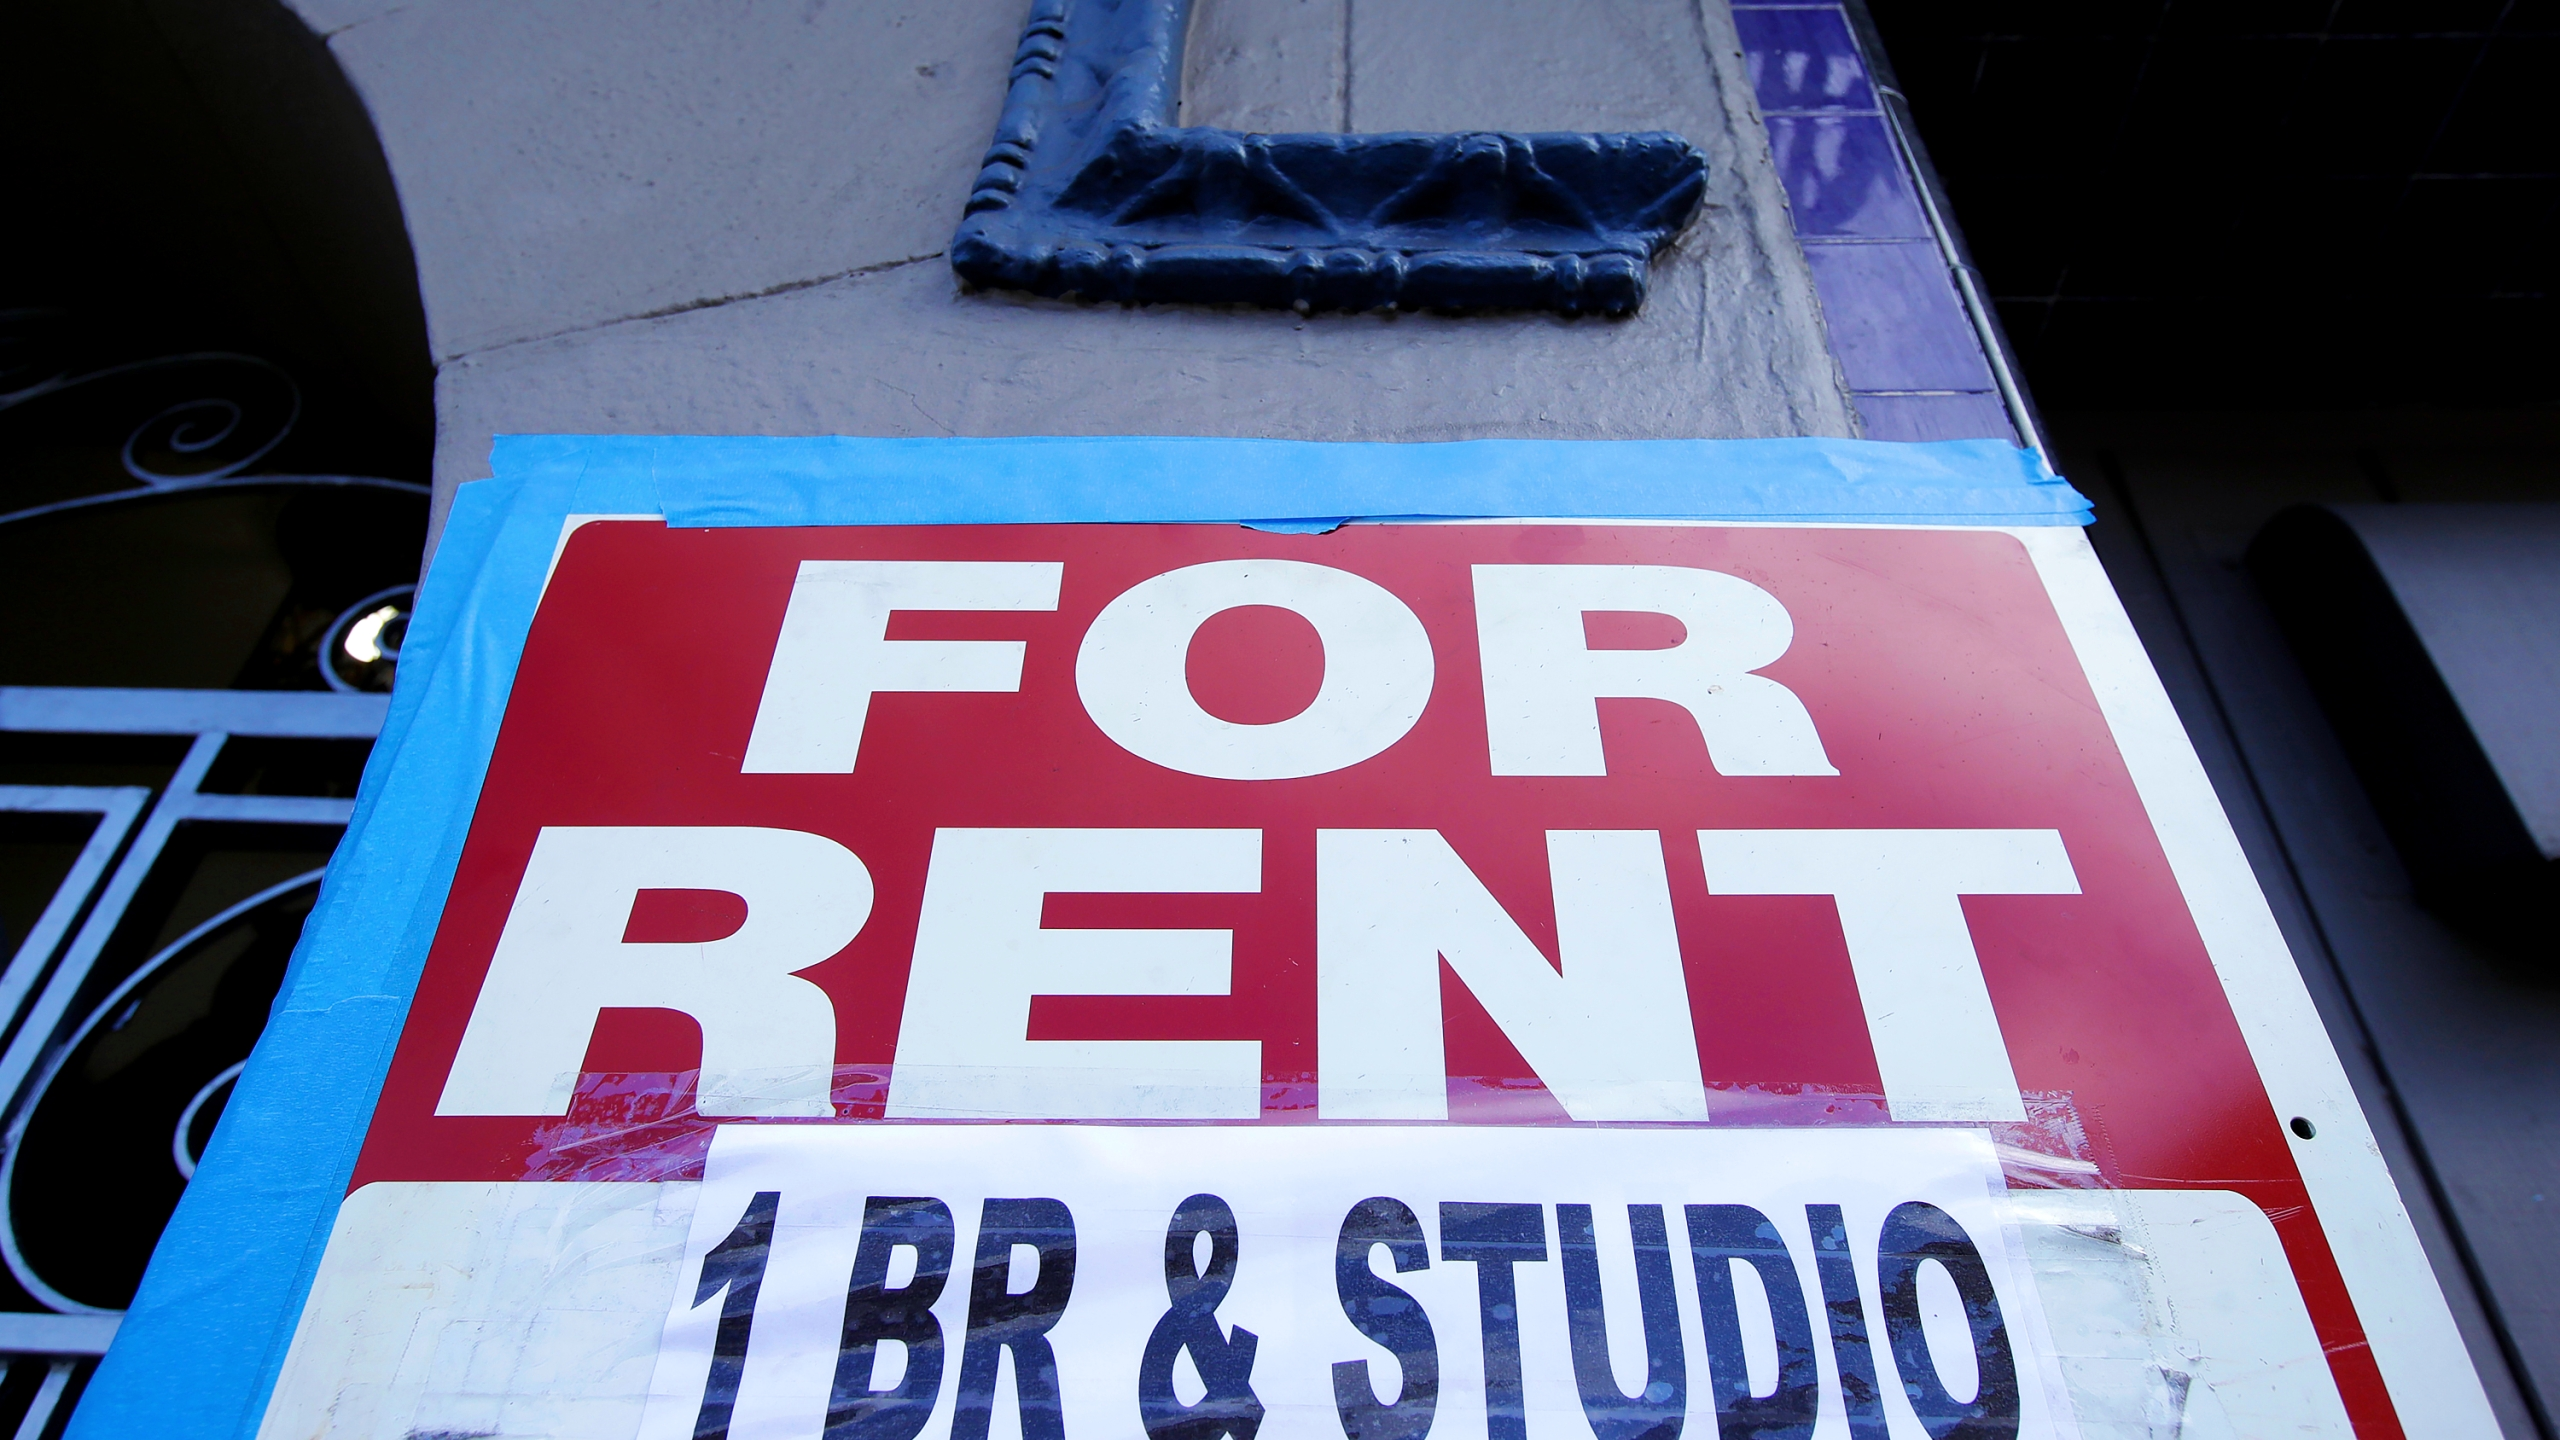 A For Rent sign is shown outside of a property in San Francisco, June 21, 2020. (Jeff Chiu/Associated Press)